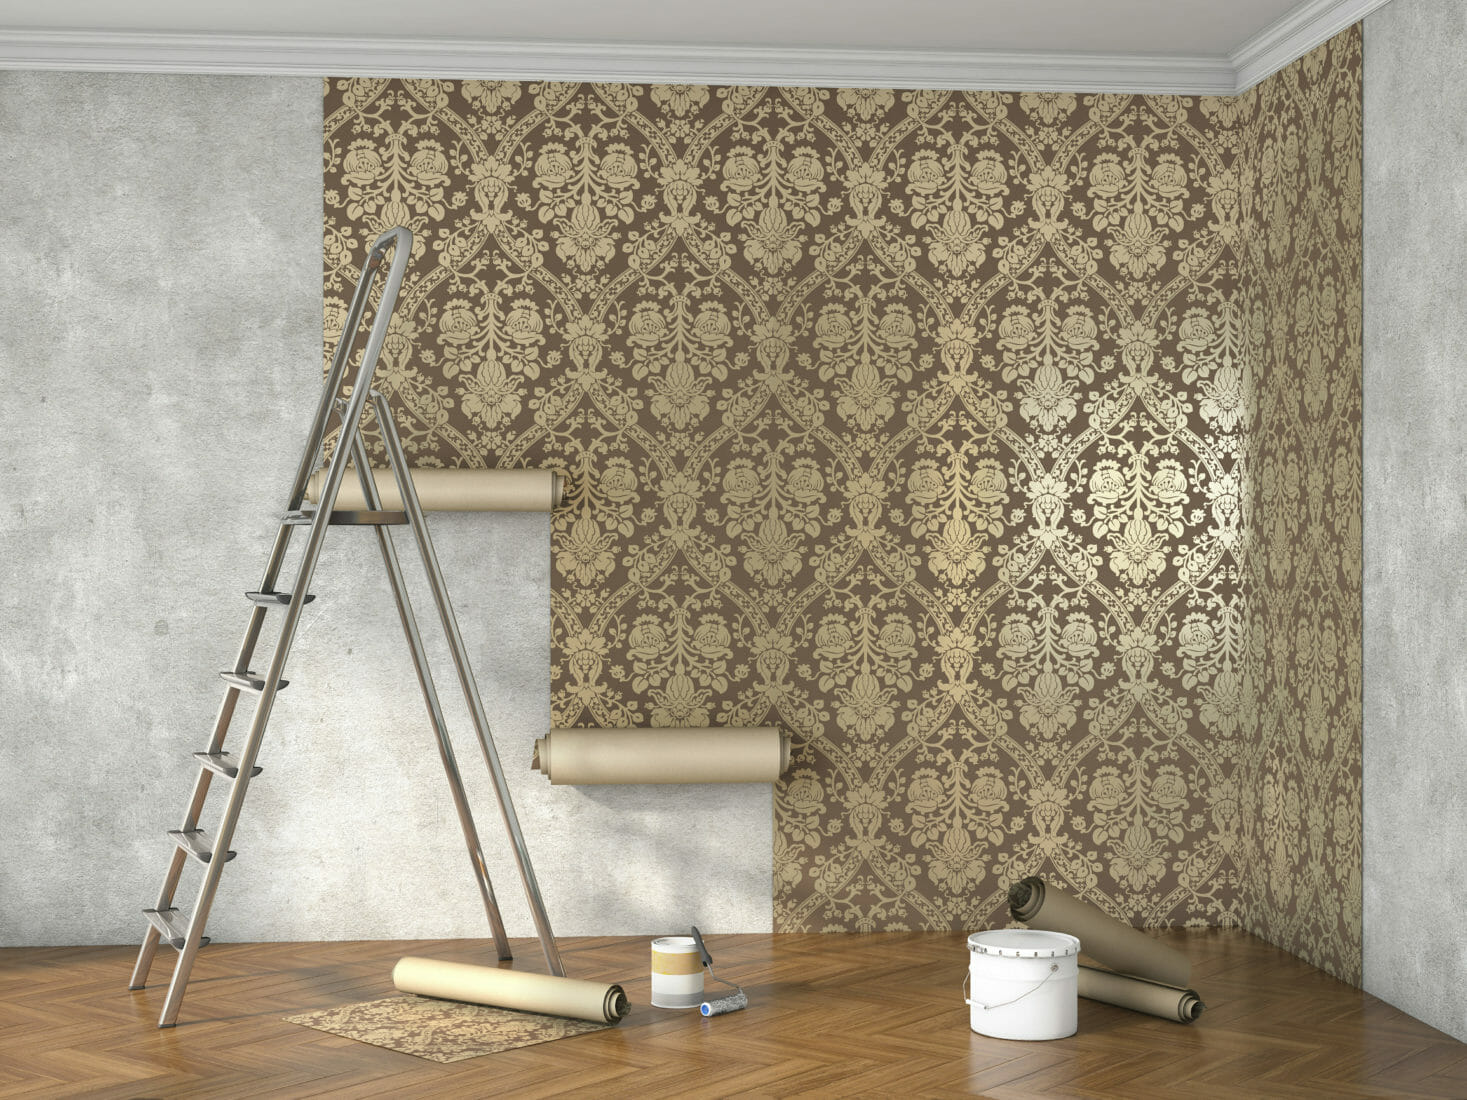 Our guide to wallpaper for every budget